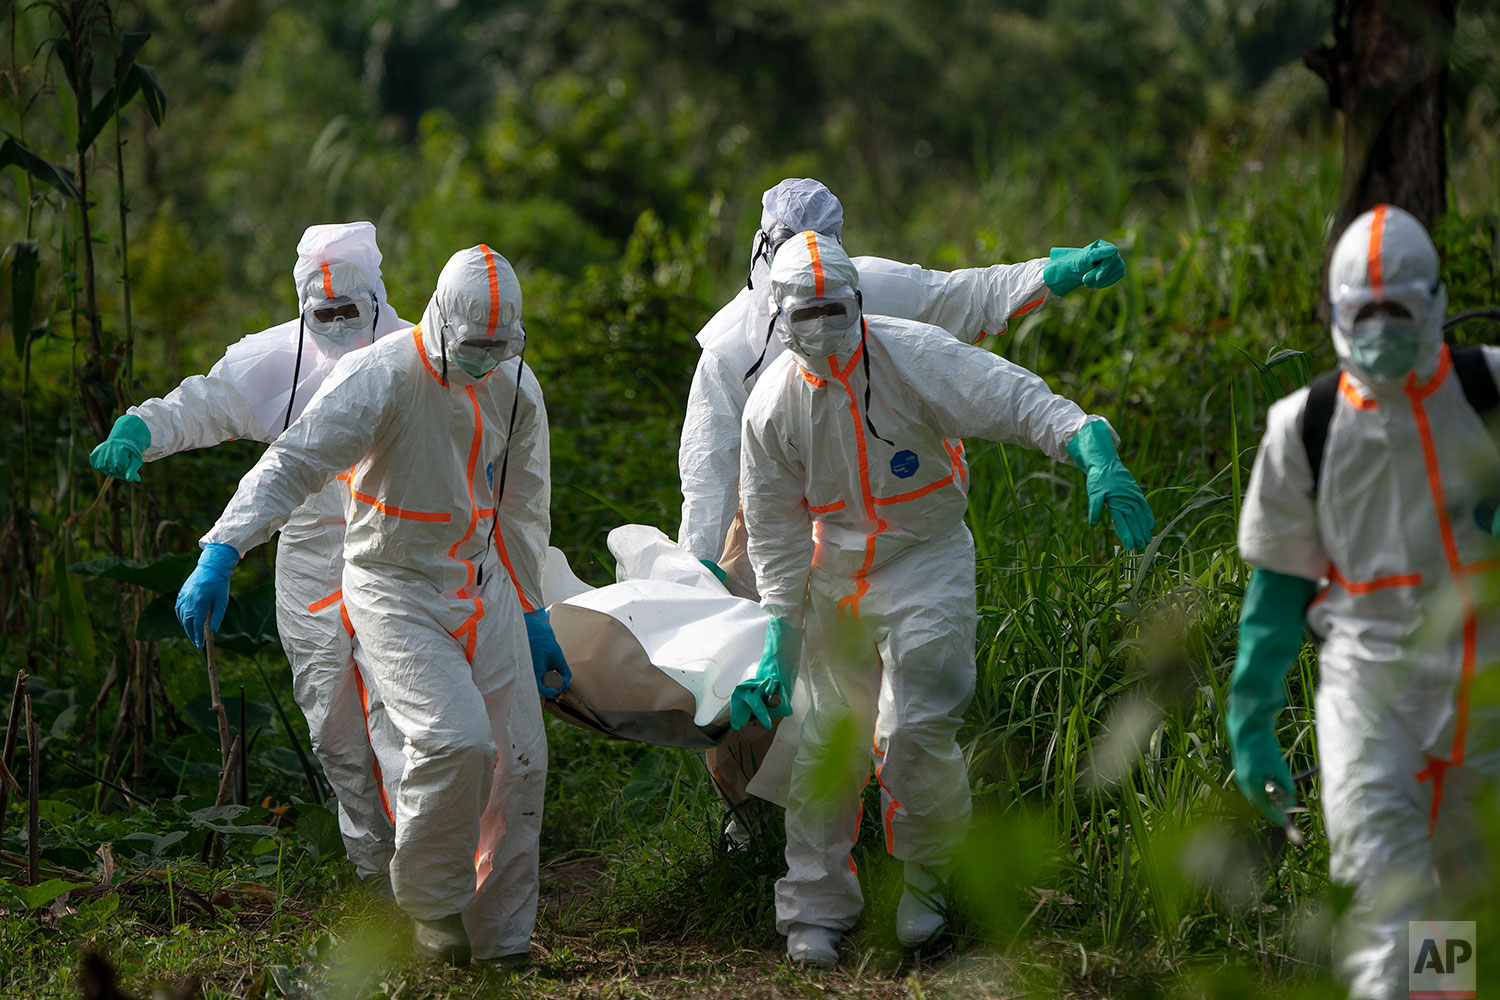 In this July 14, 2019 photo, burial workers dressed in protective gear  carry the remains of Mussa Kathembo, an Islamic  scholar who had prayed over those who were sick, and died of Ebola, in Beni, Congo DRC.  (AP Photo/Jerome Delay)